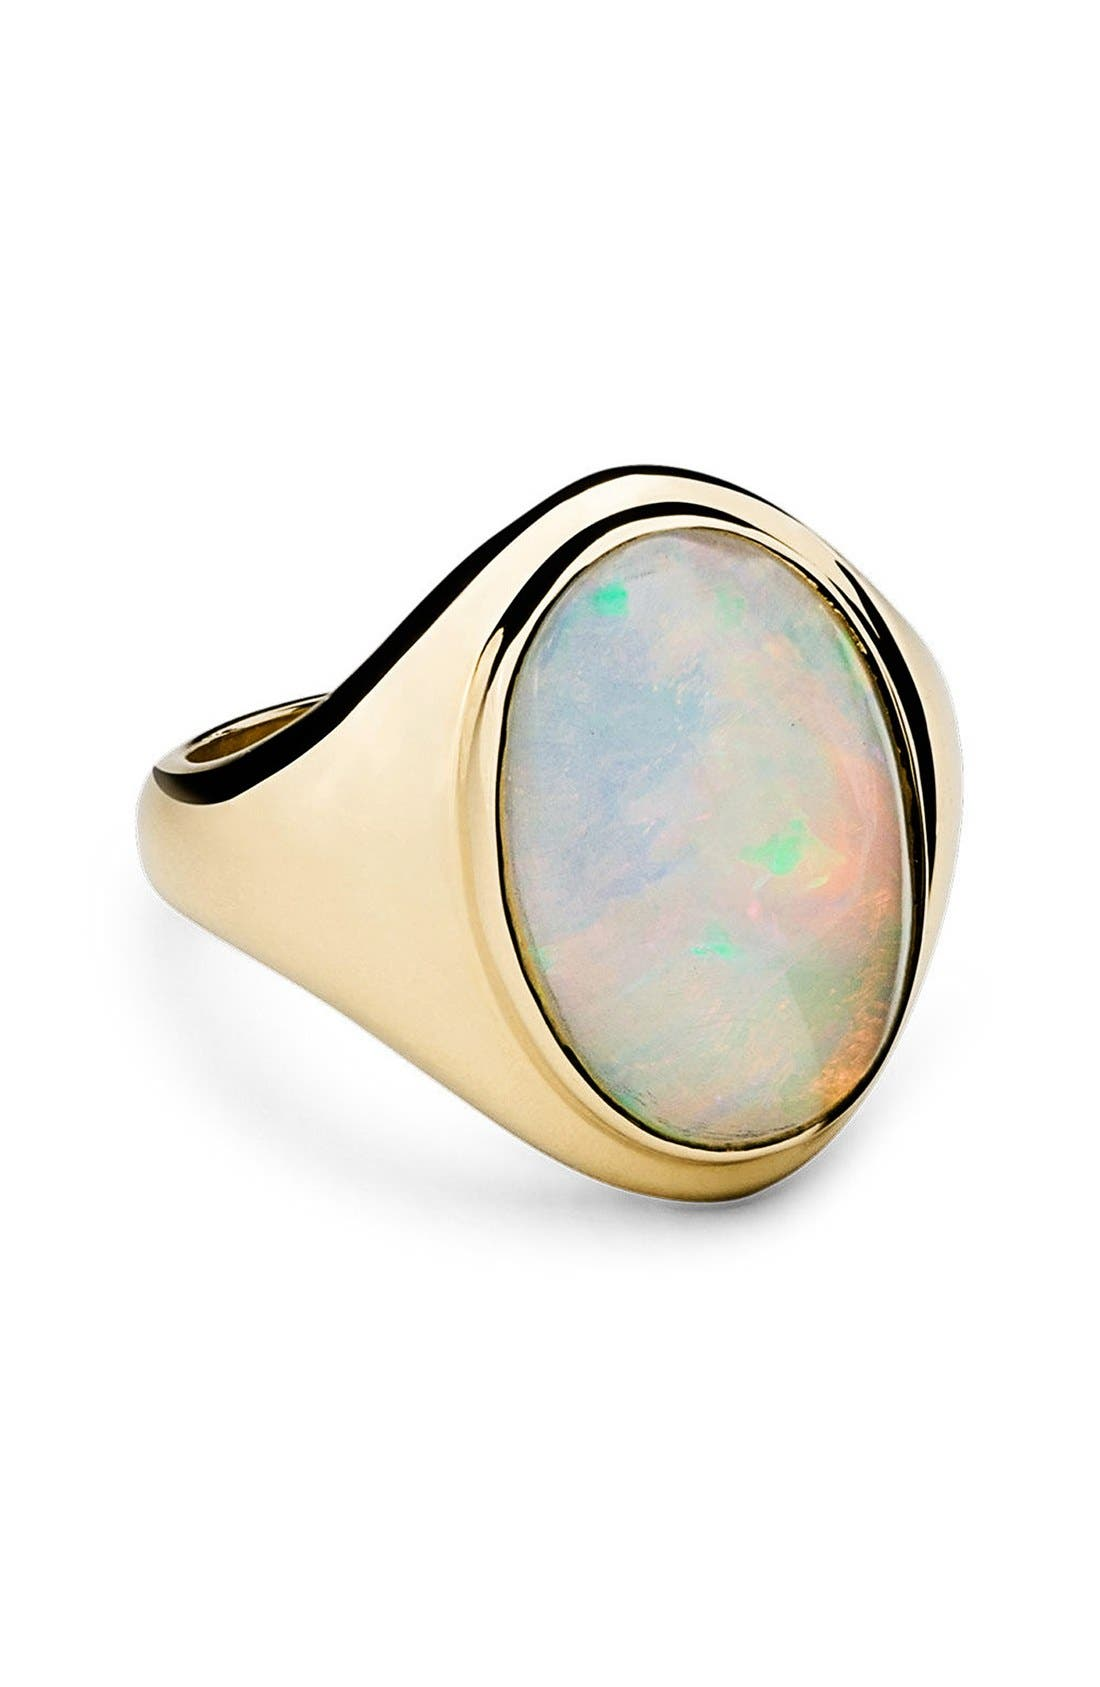 Alternate Image 1 Selected - Shinola Opal Signet Ring